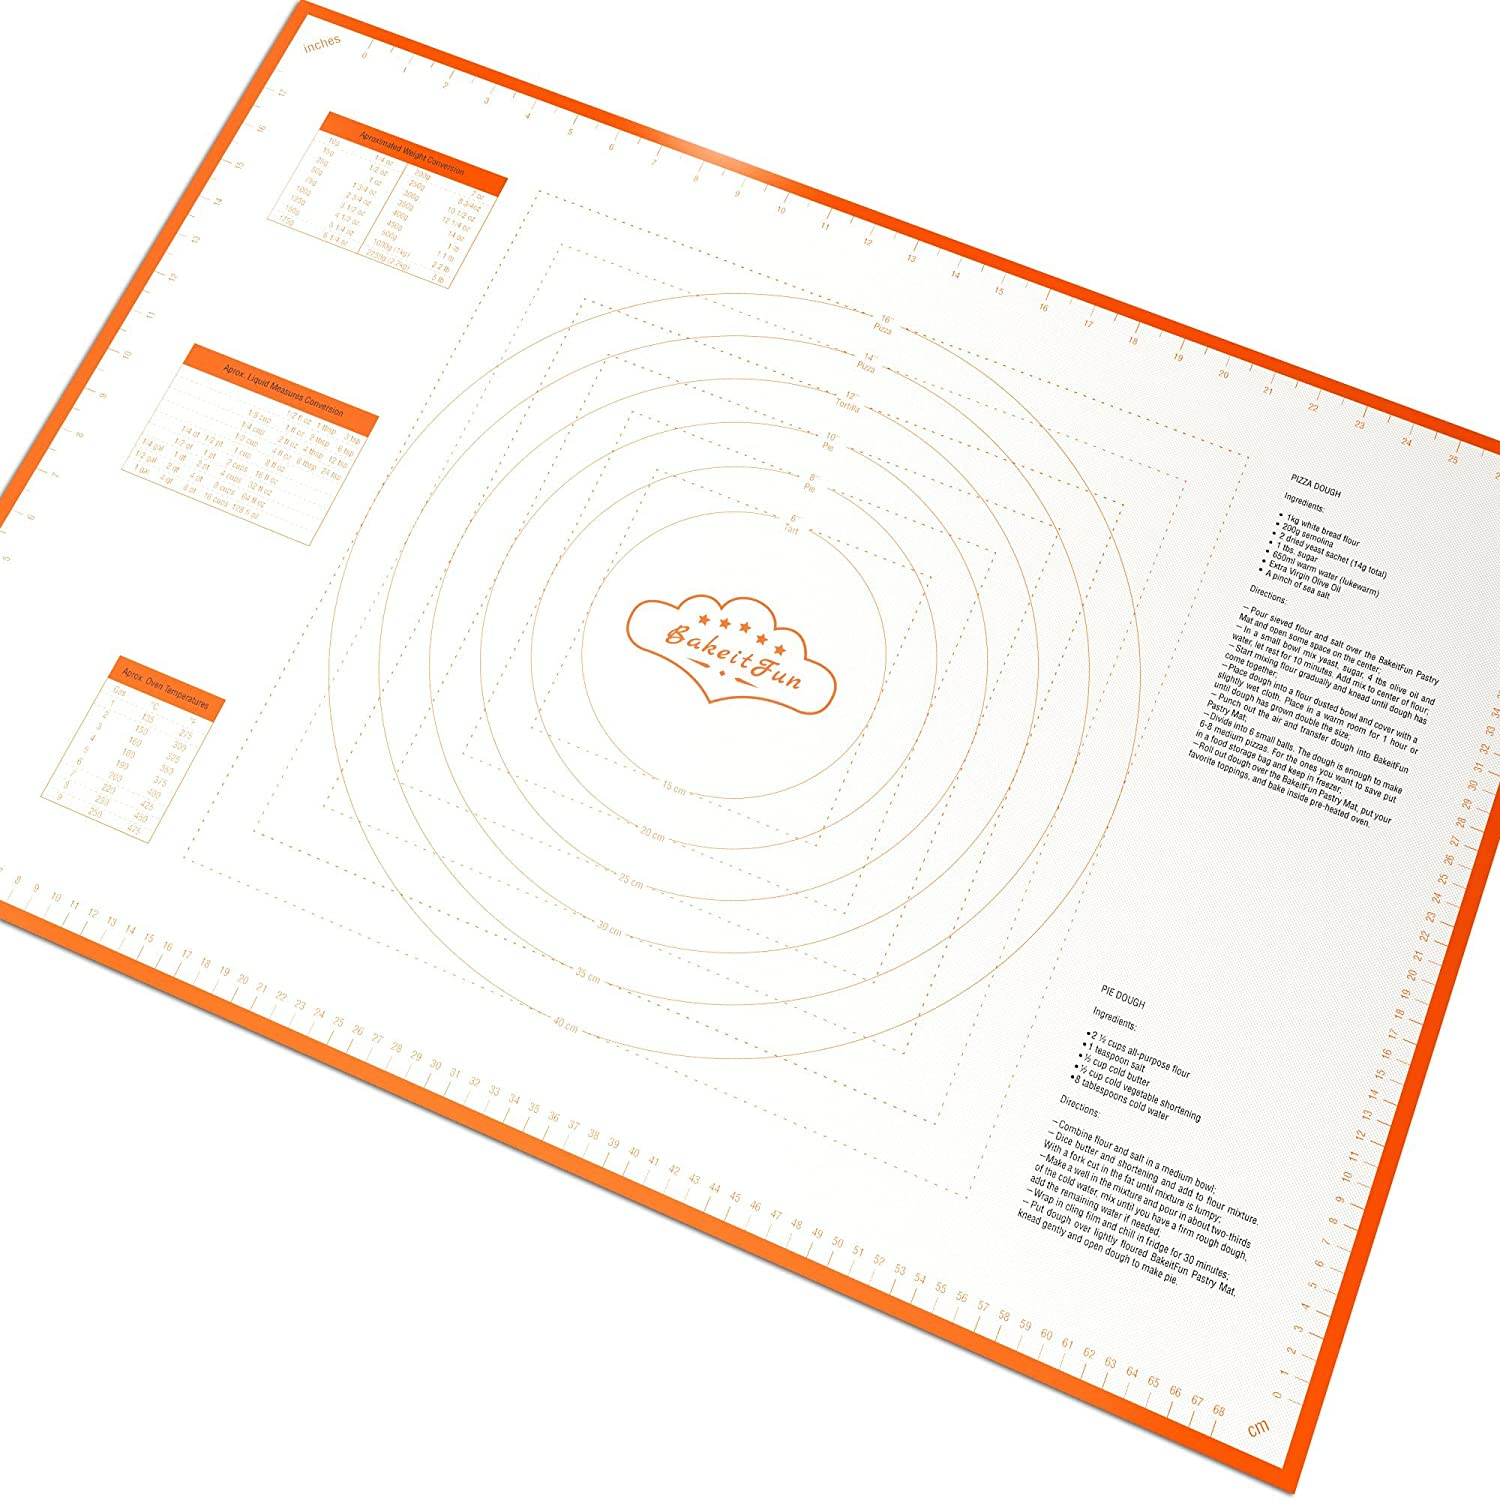 Silicone Pastry Mat With Measurements | X-Large Size: 29.5 x 20.5 Inches | FDA and LFGB Approved | Extra Big Baking Mat | Full Sticks To Countertop For Rolling Dough | Conversion Information Included